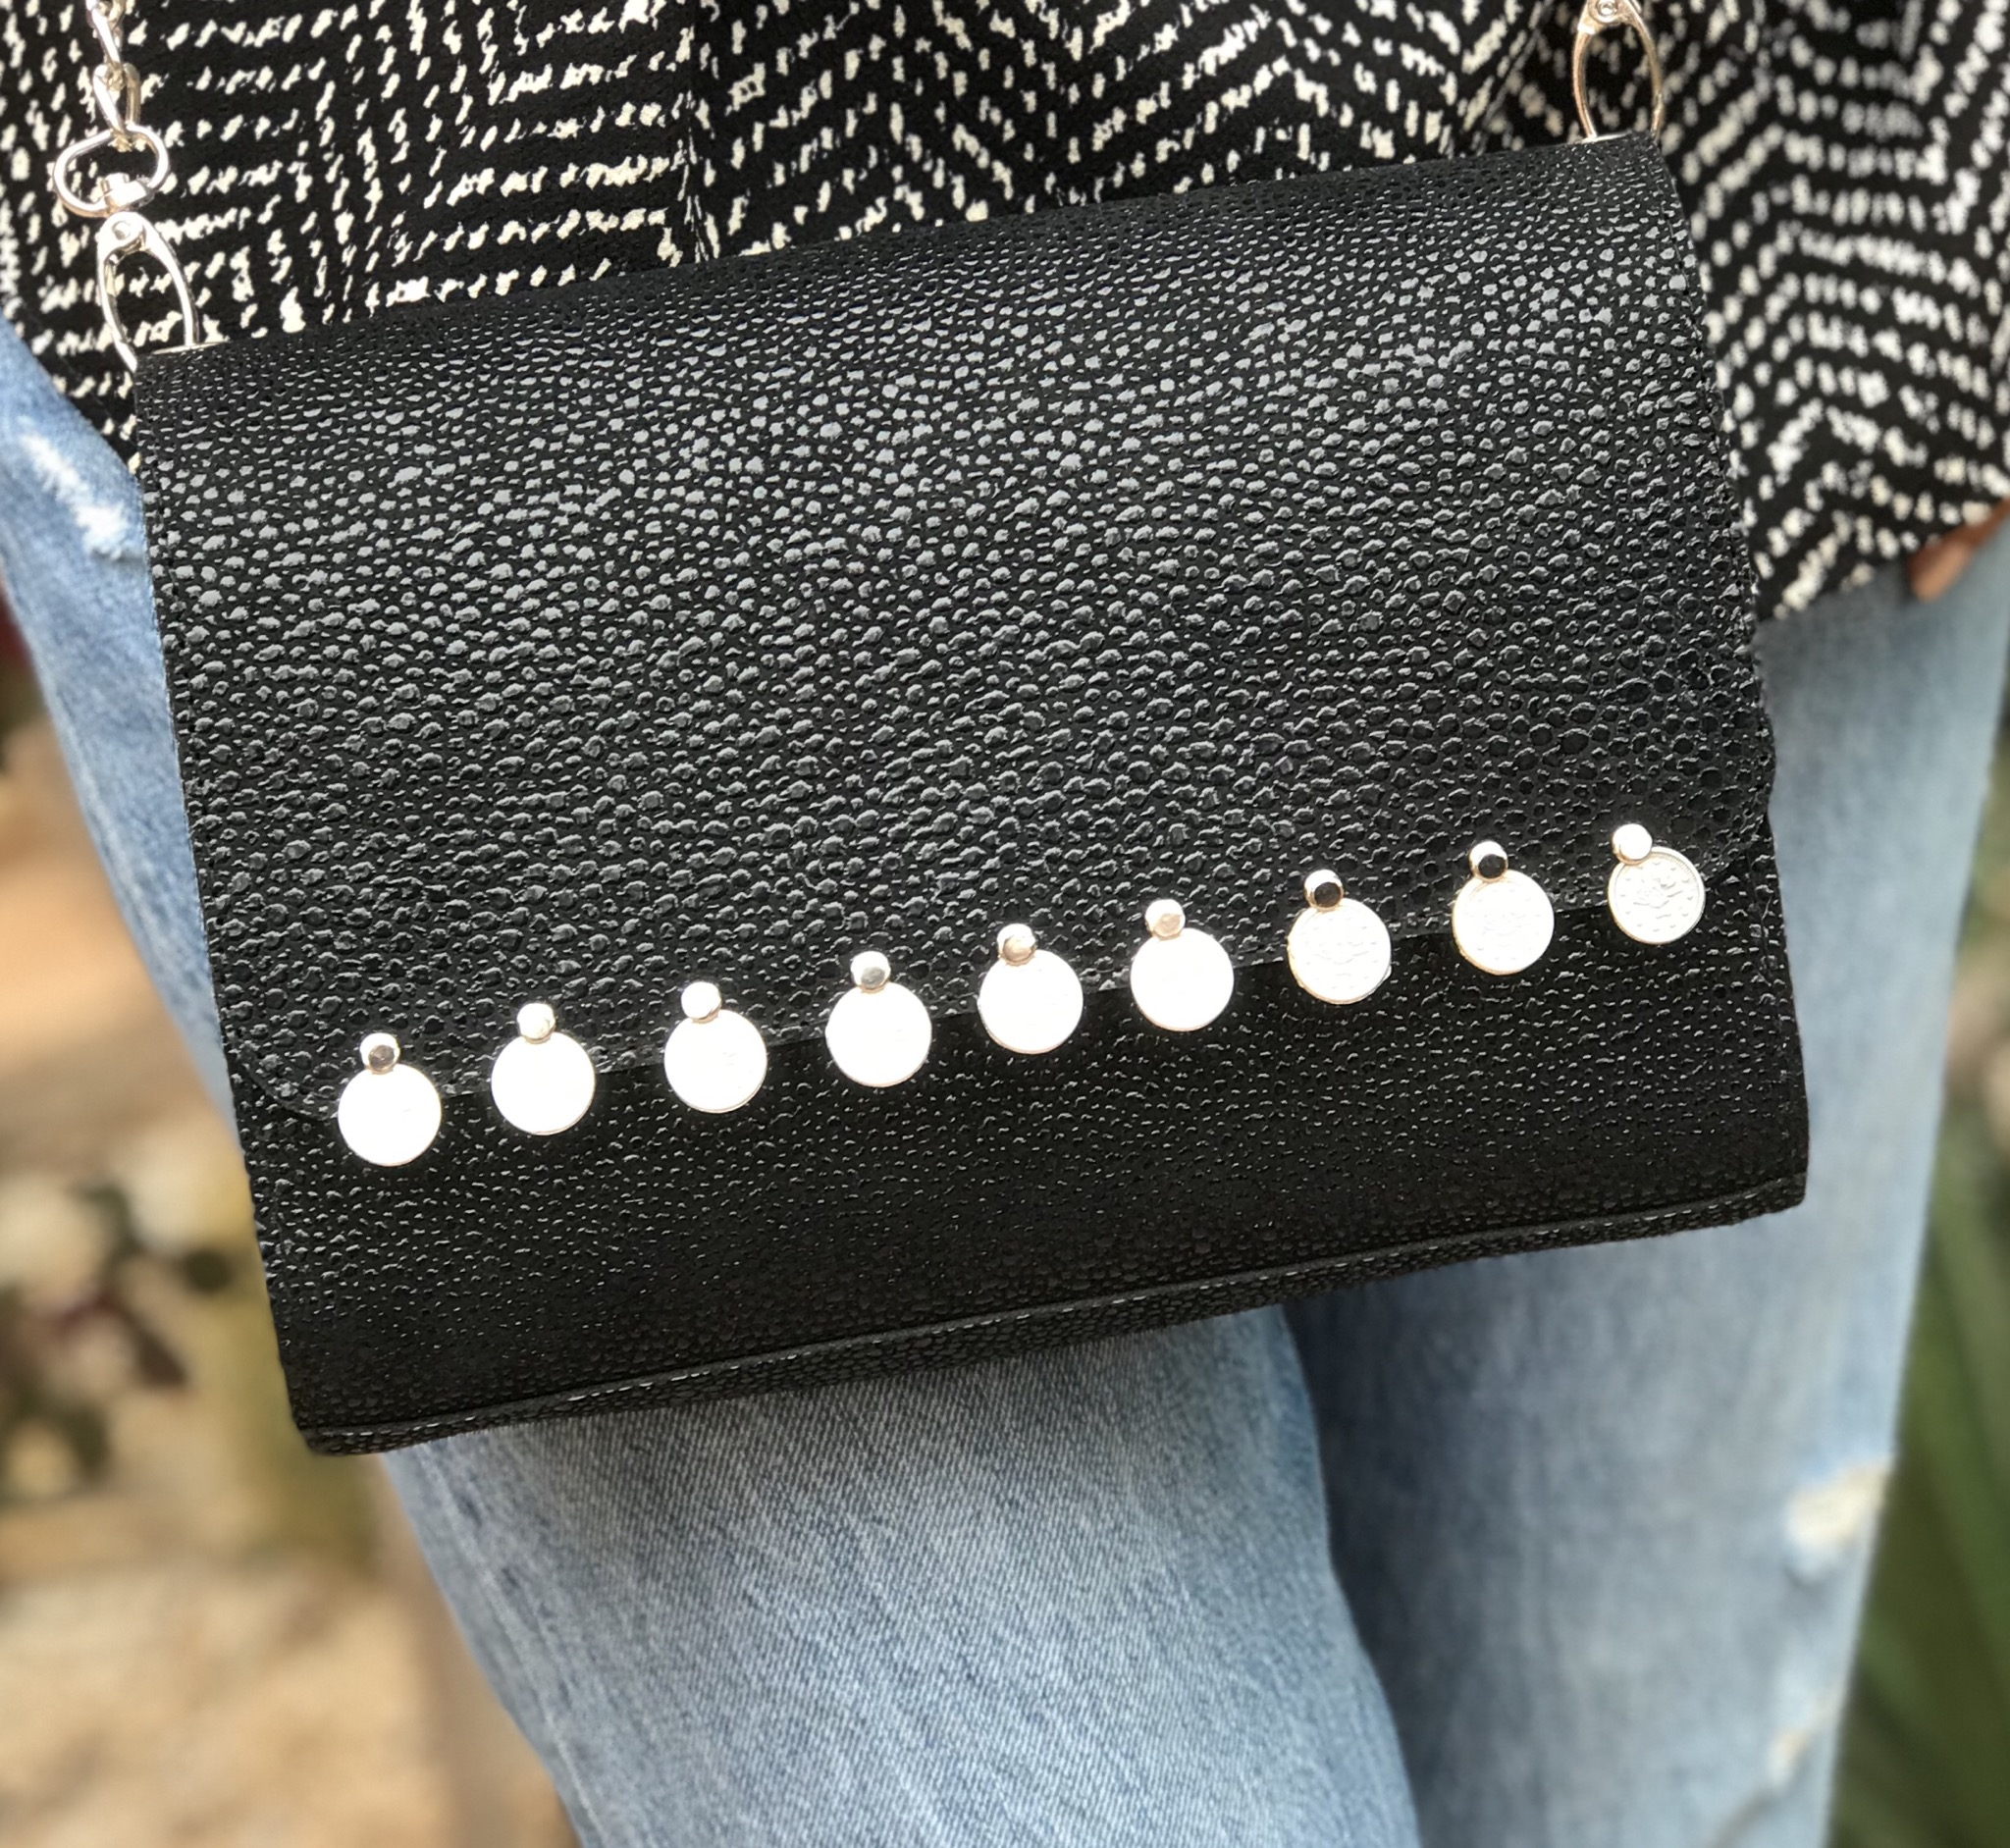 bag jewelry learher caviar black with coins